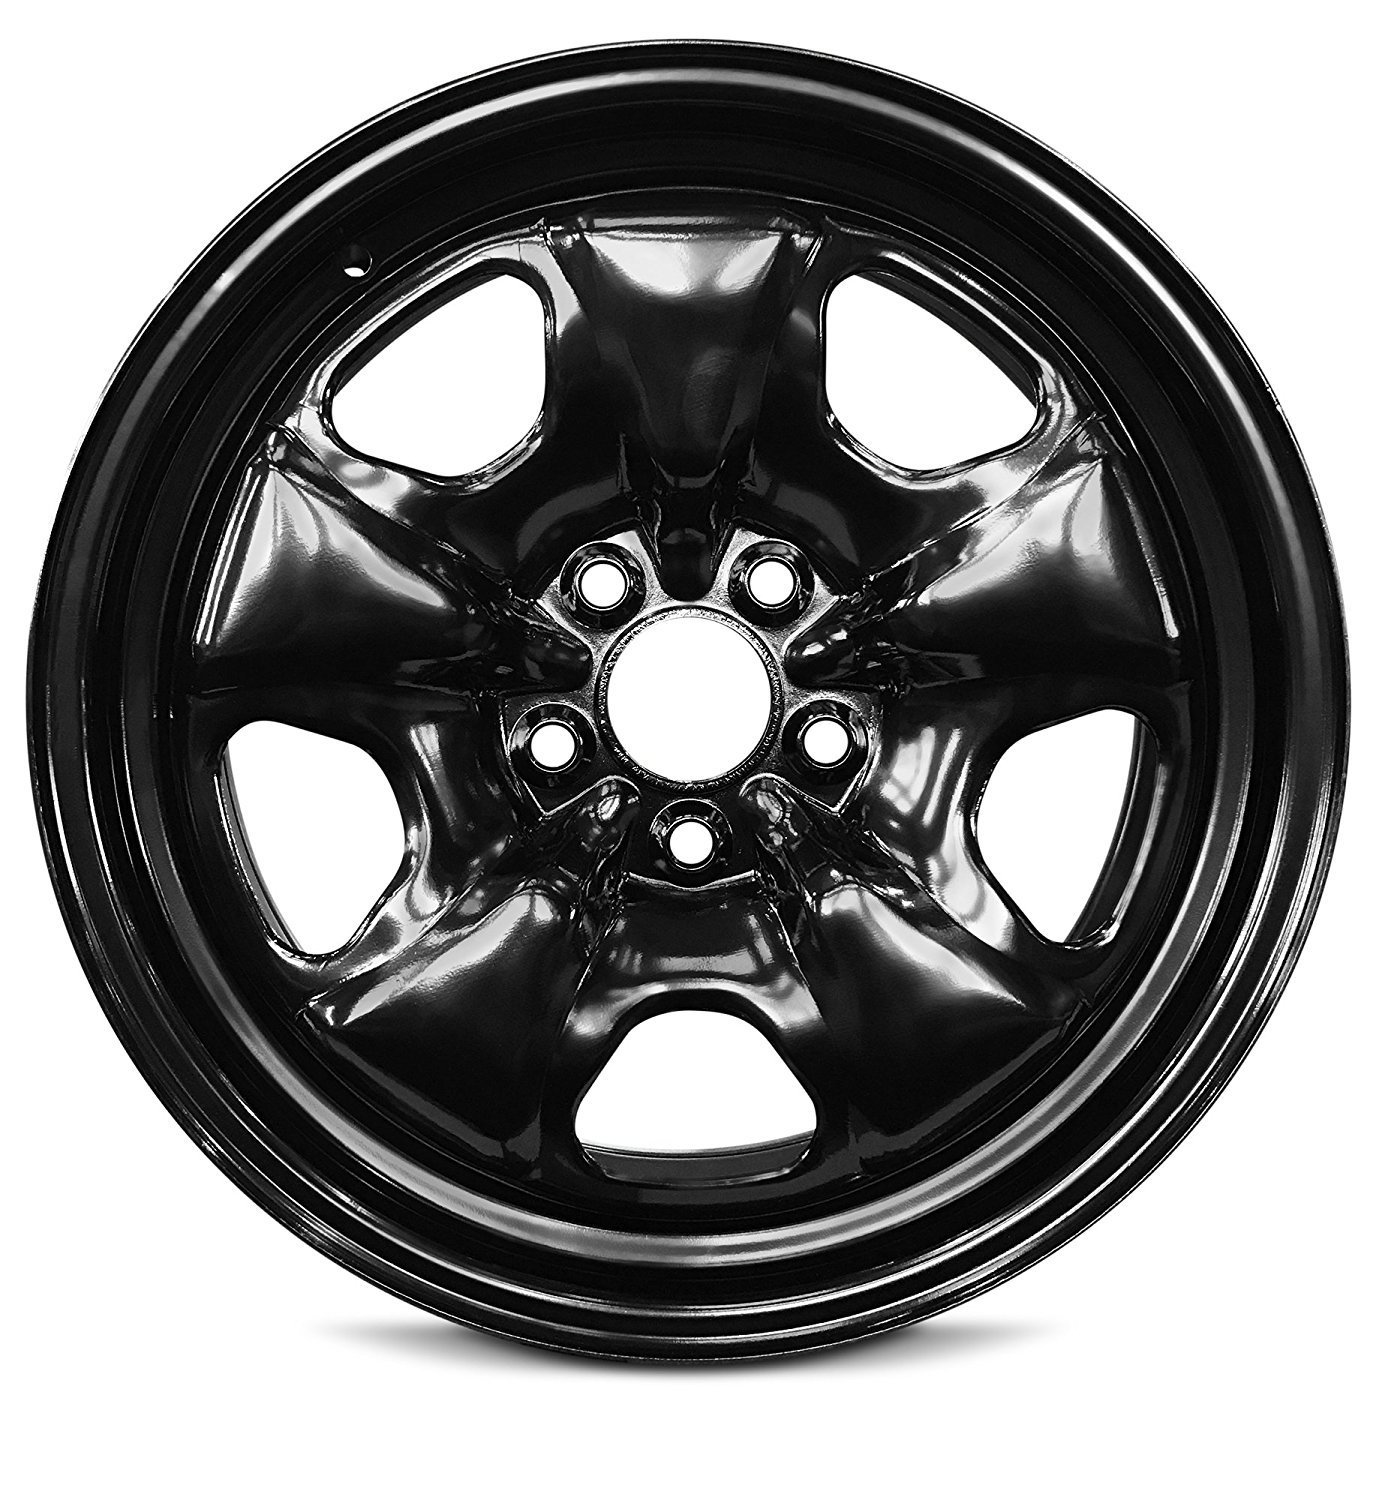 road ready replacement wheel for 18x7 5 2010 2013 chevrolet camaro 1968 Chevrolet Camaro RS SS